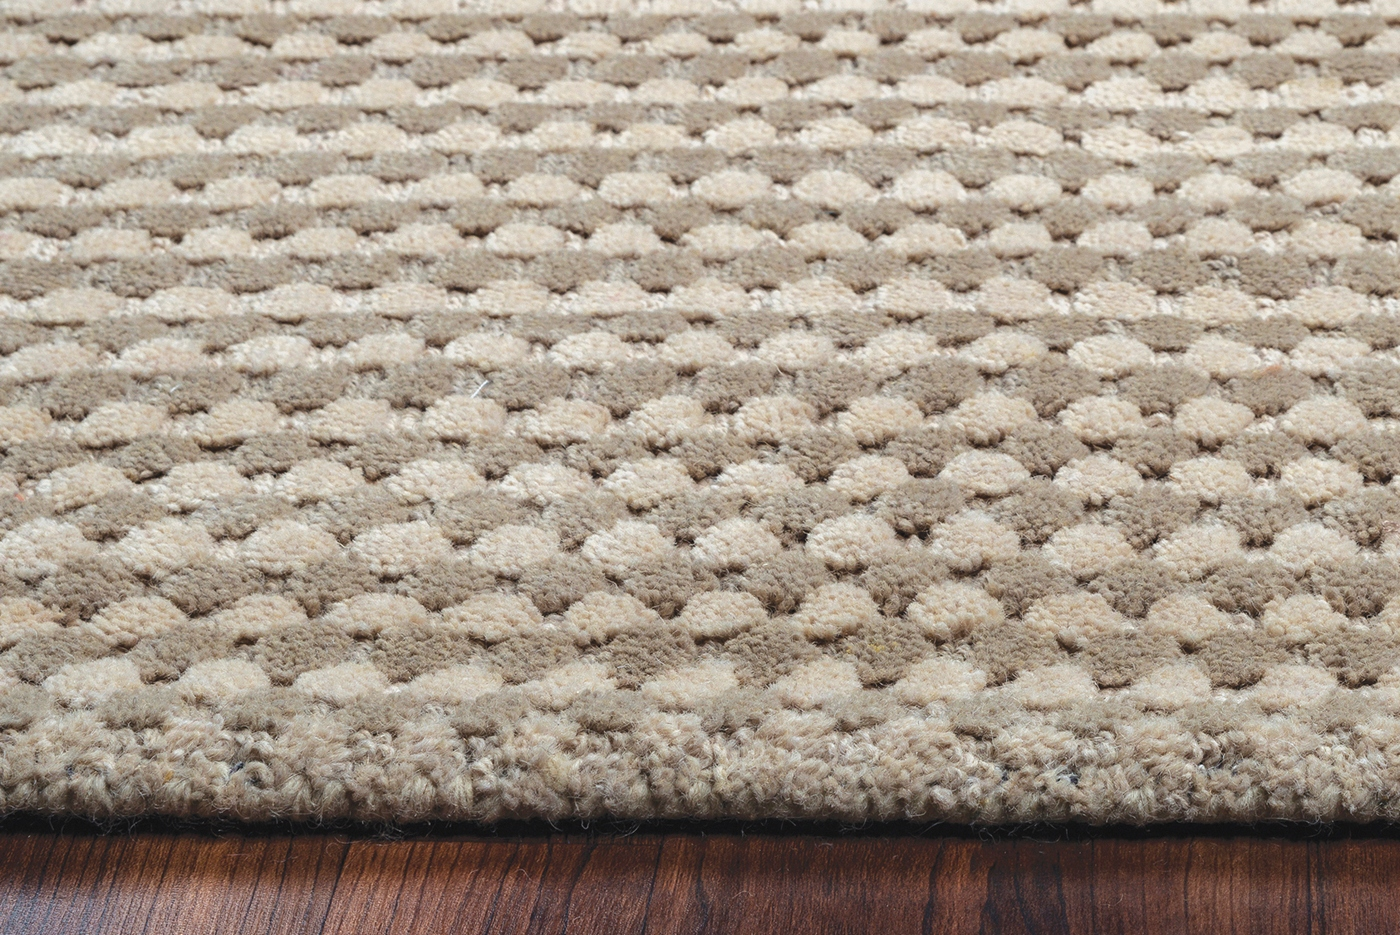 Grey Tan And Brown Area Rug: Platoon Dotted Pattern Wool Area Rug In Grey & Khaki, 3' X 5